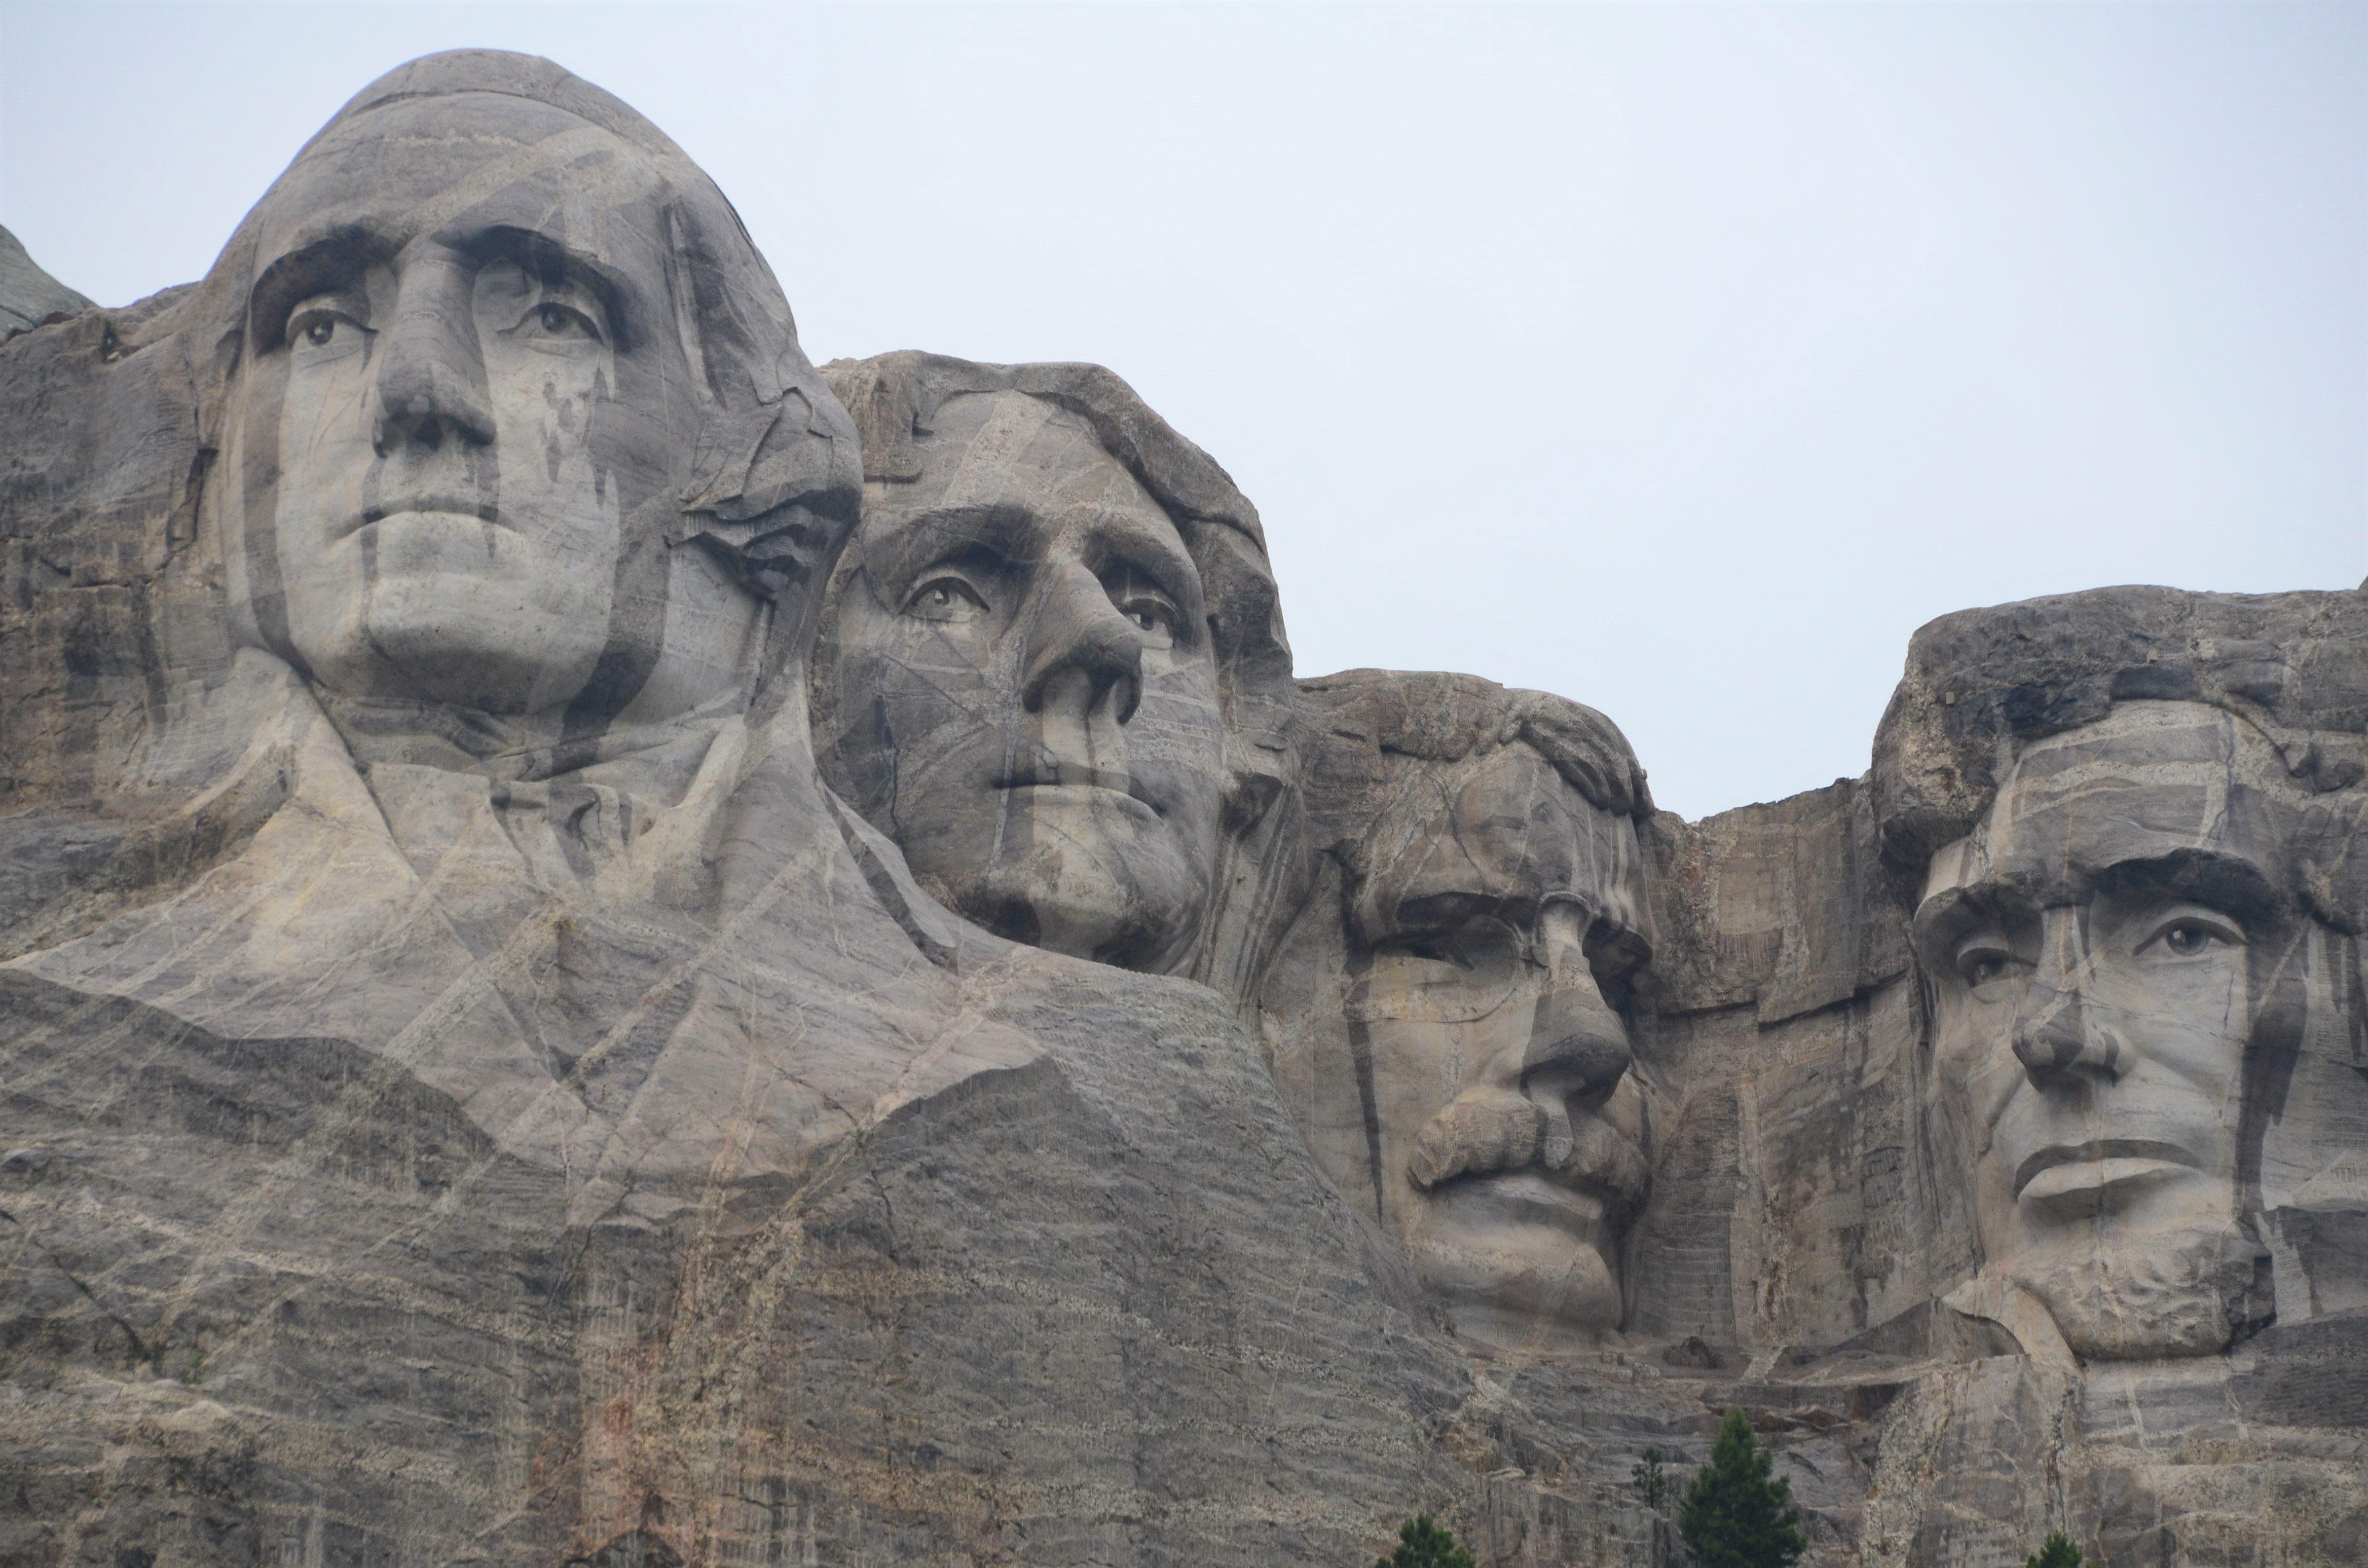 Mount Rushmore is a stunning site